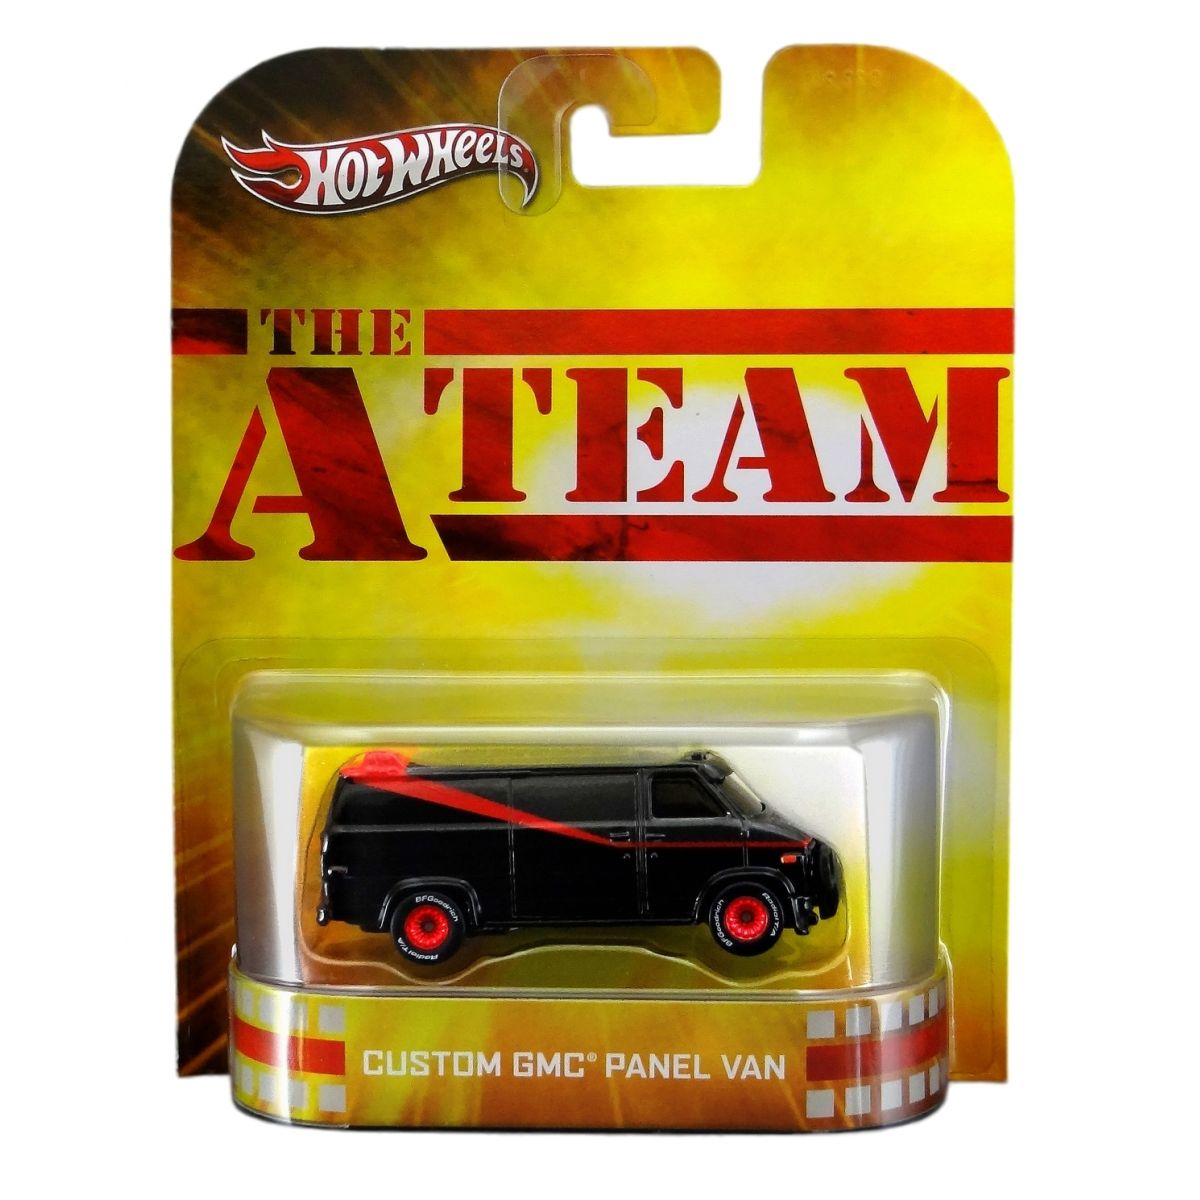 Hot Wheels - Retro Entertainment 2013 - A-Team - Custom GMC Panel Van